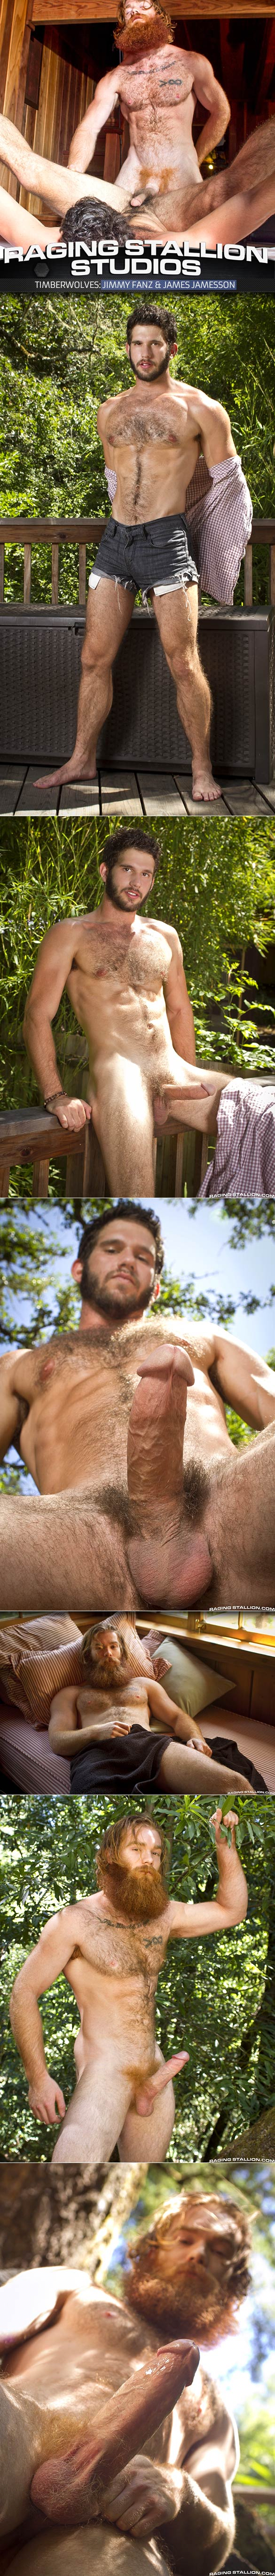 "Raging Stallion: James Jamesson pounds Jimmy Fanz in ""Timberwolves"""